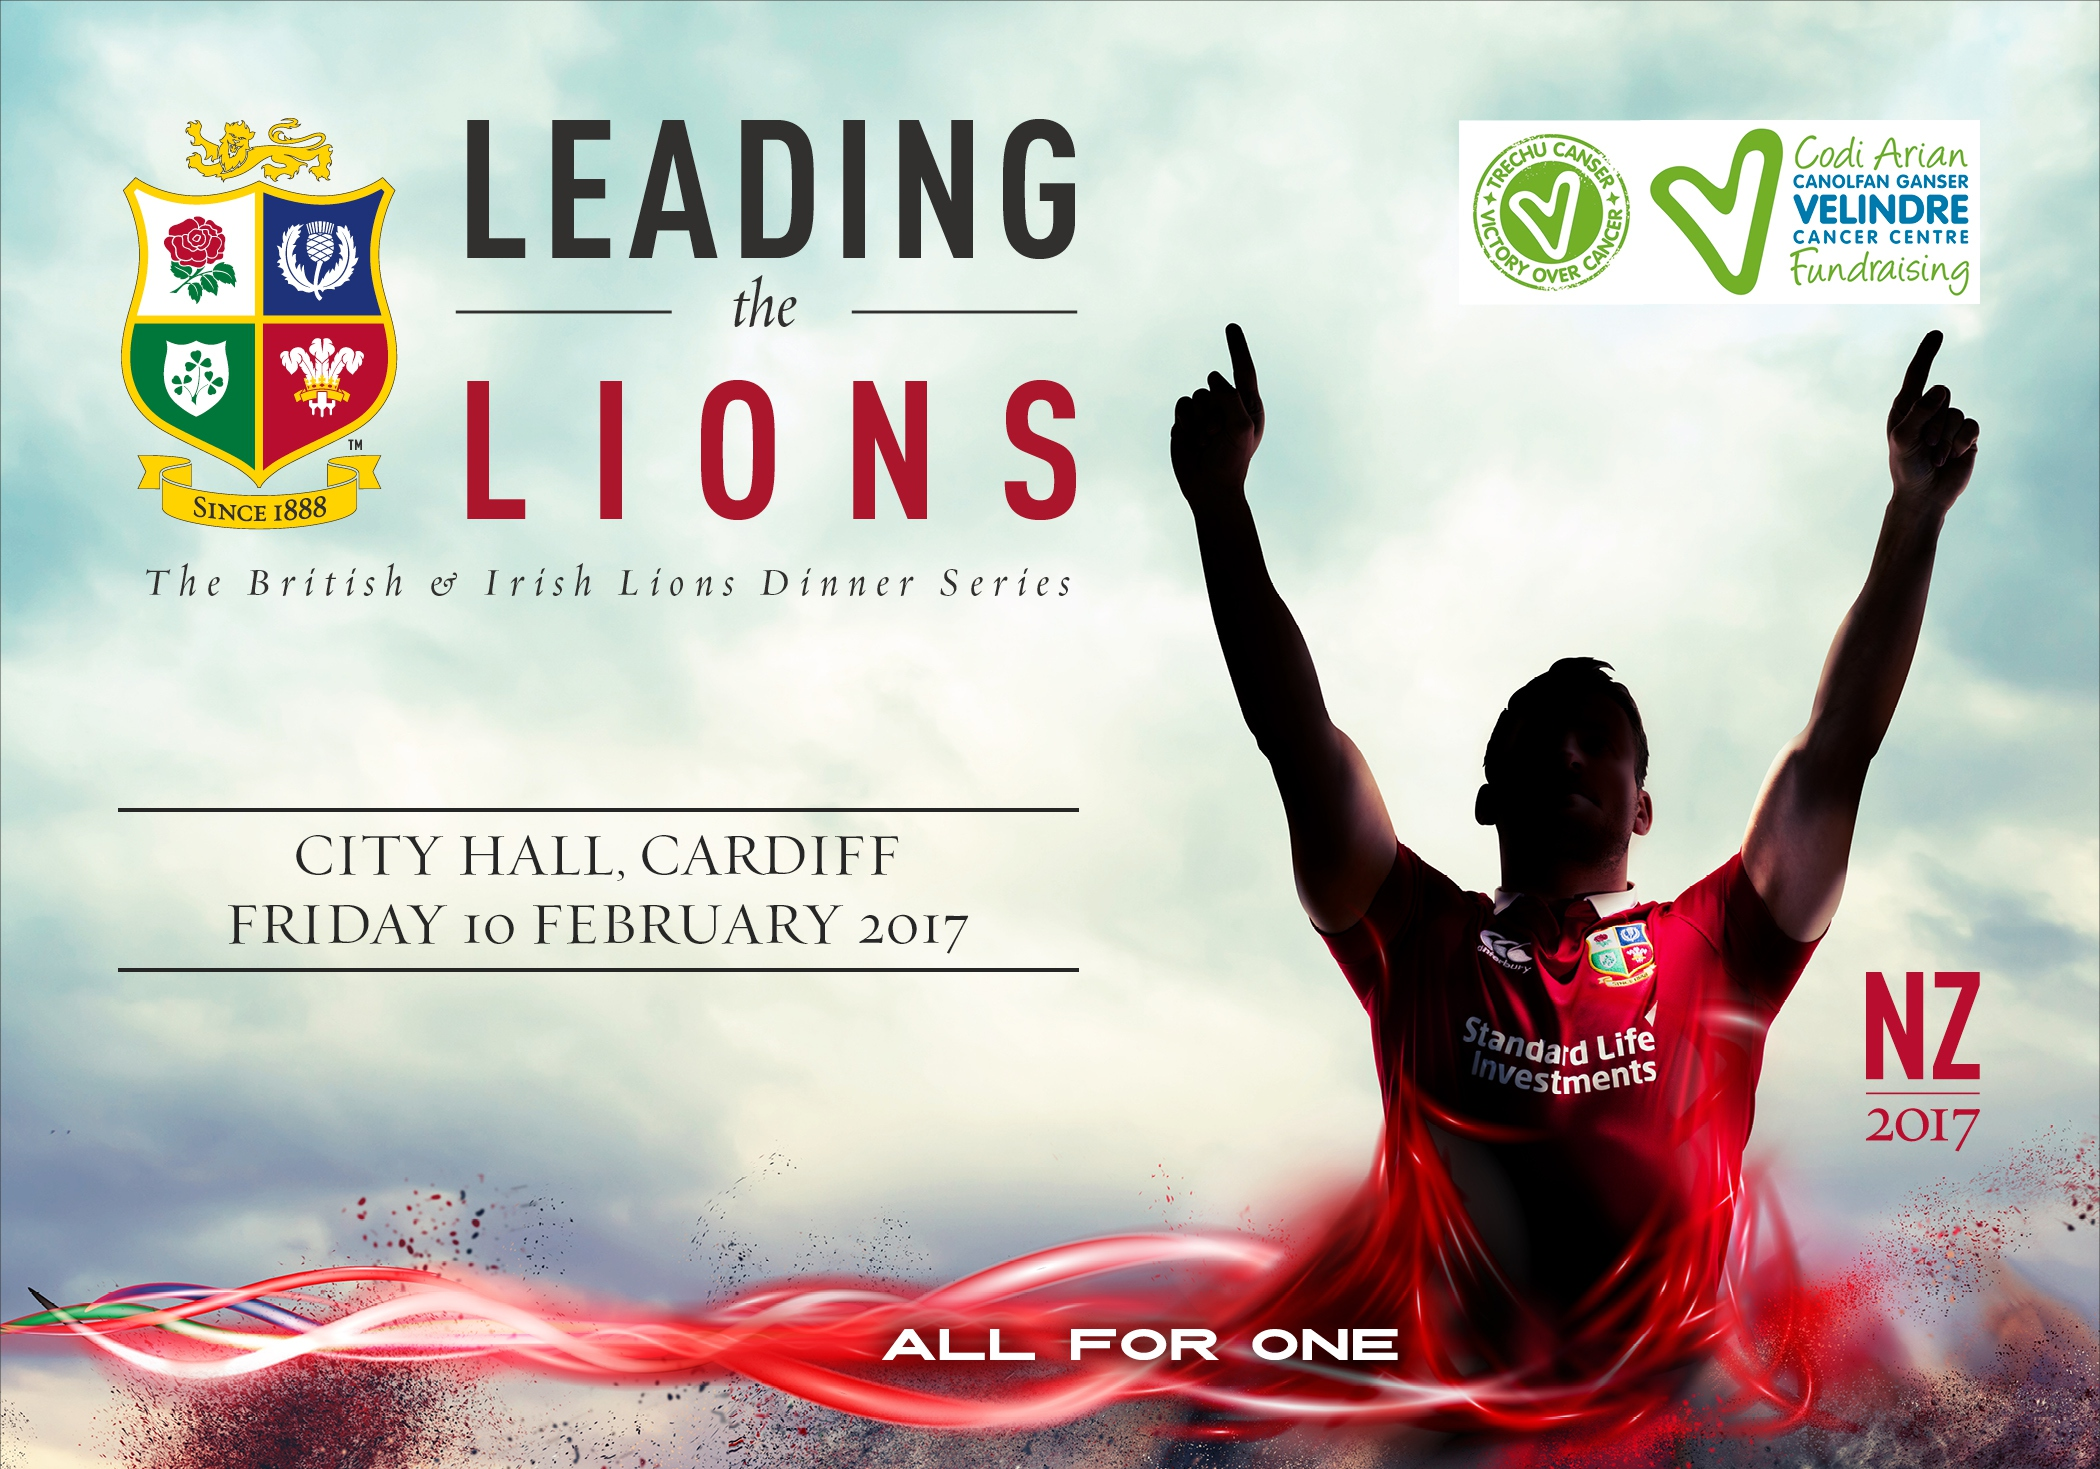 BRITISH & IRISH LIONS PARTNER WITH VELINDRE CANCER CENTRE